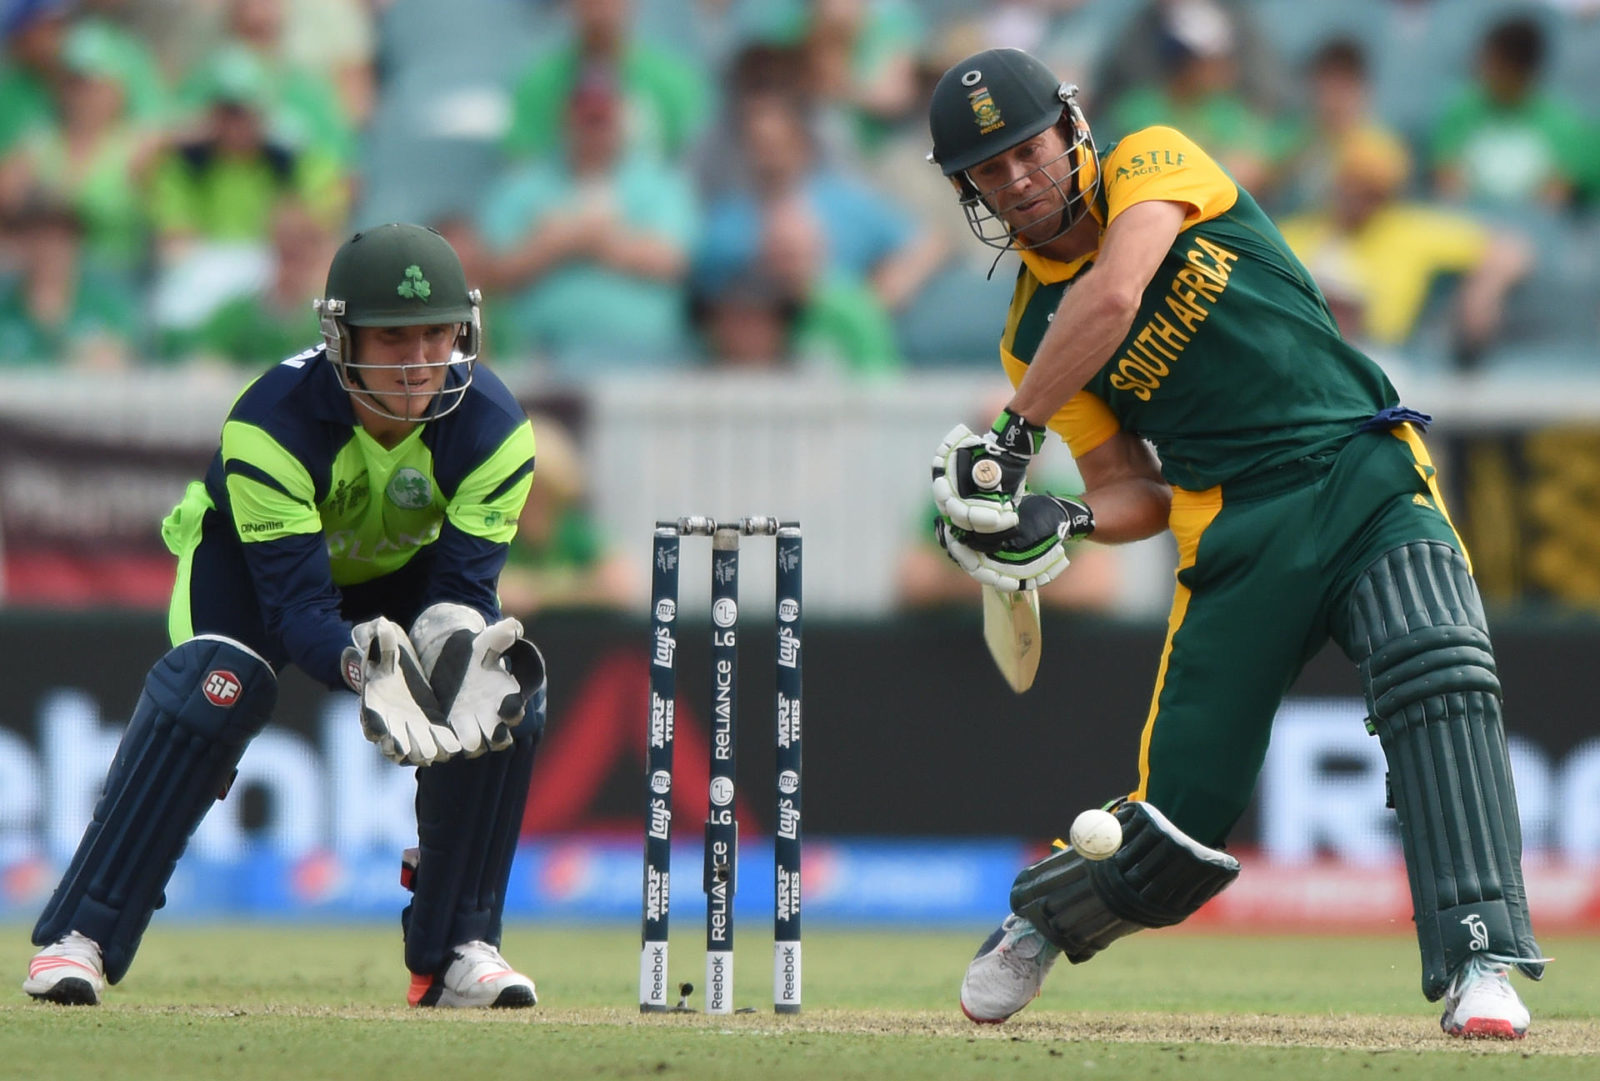 De Villiers debacle shows why cricket needs to catch up